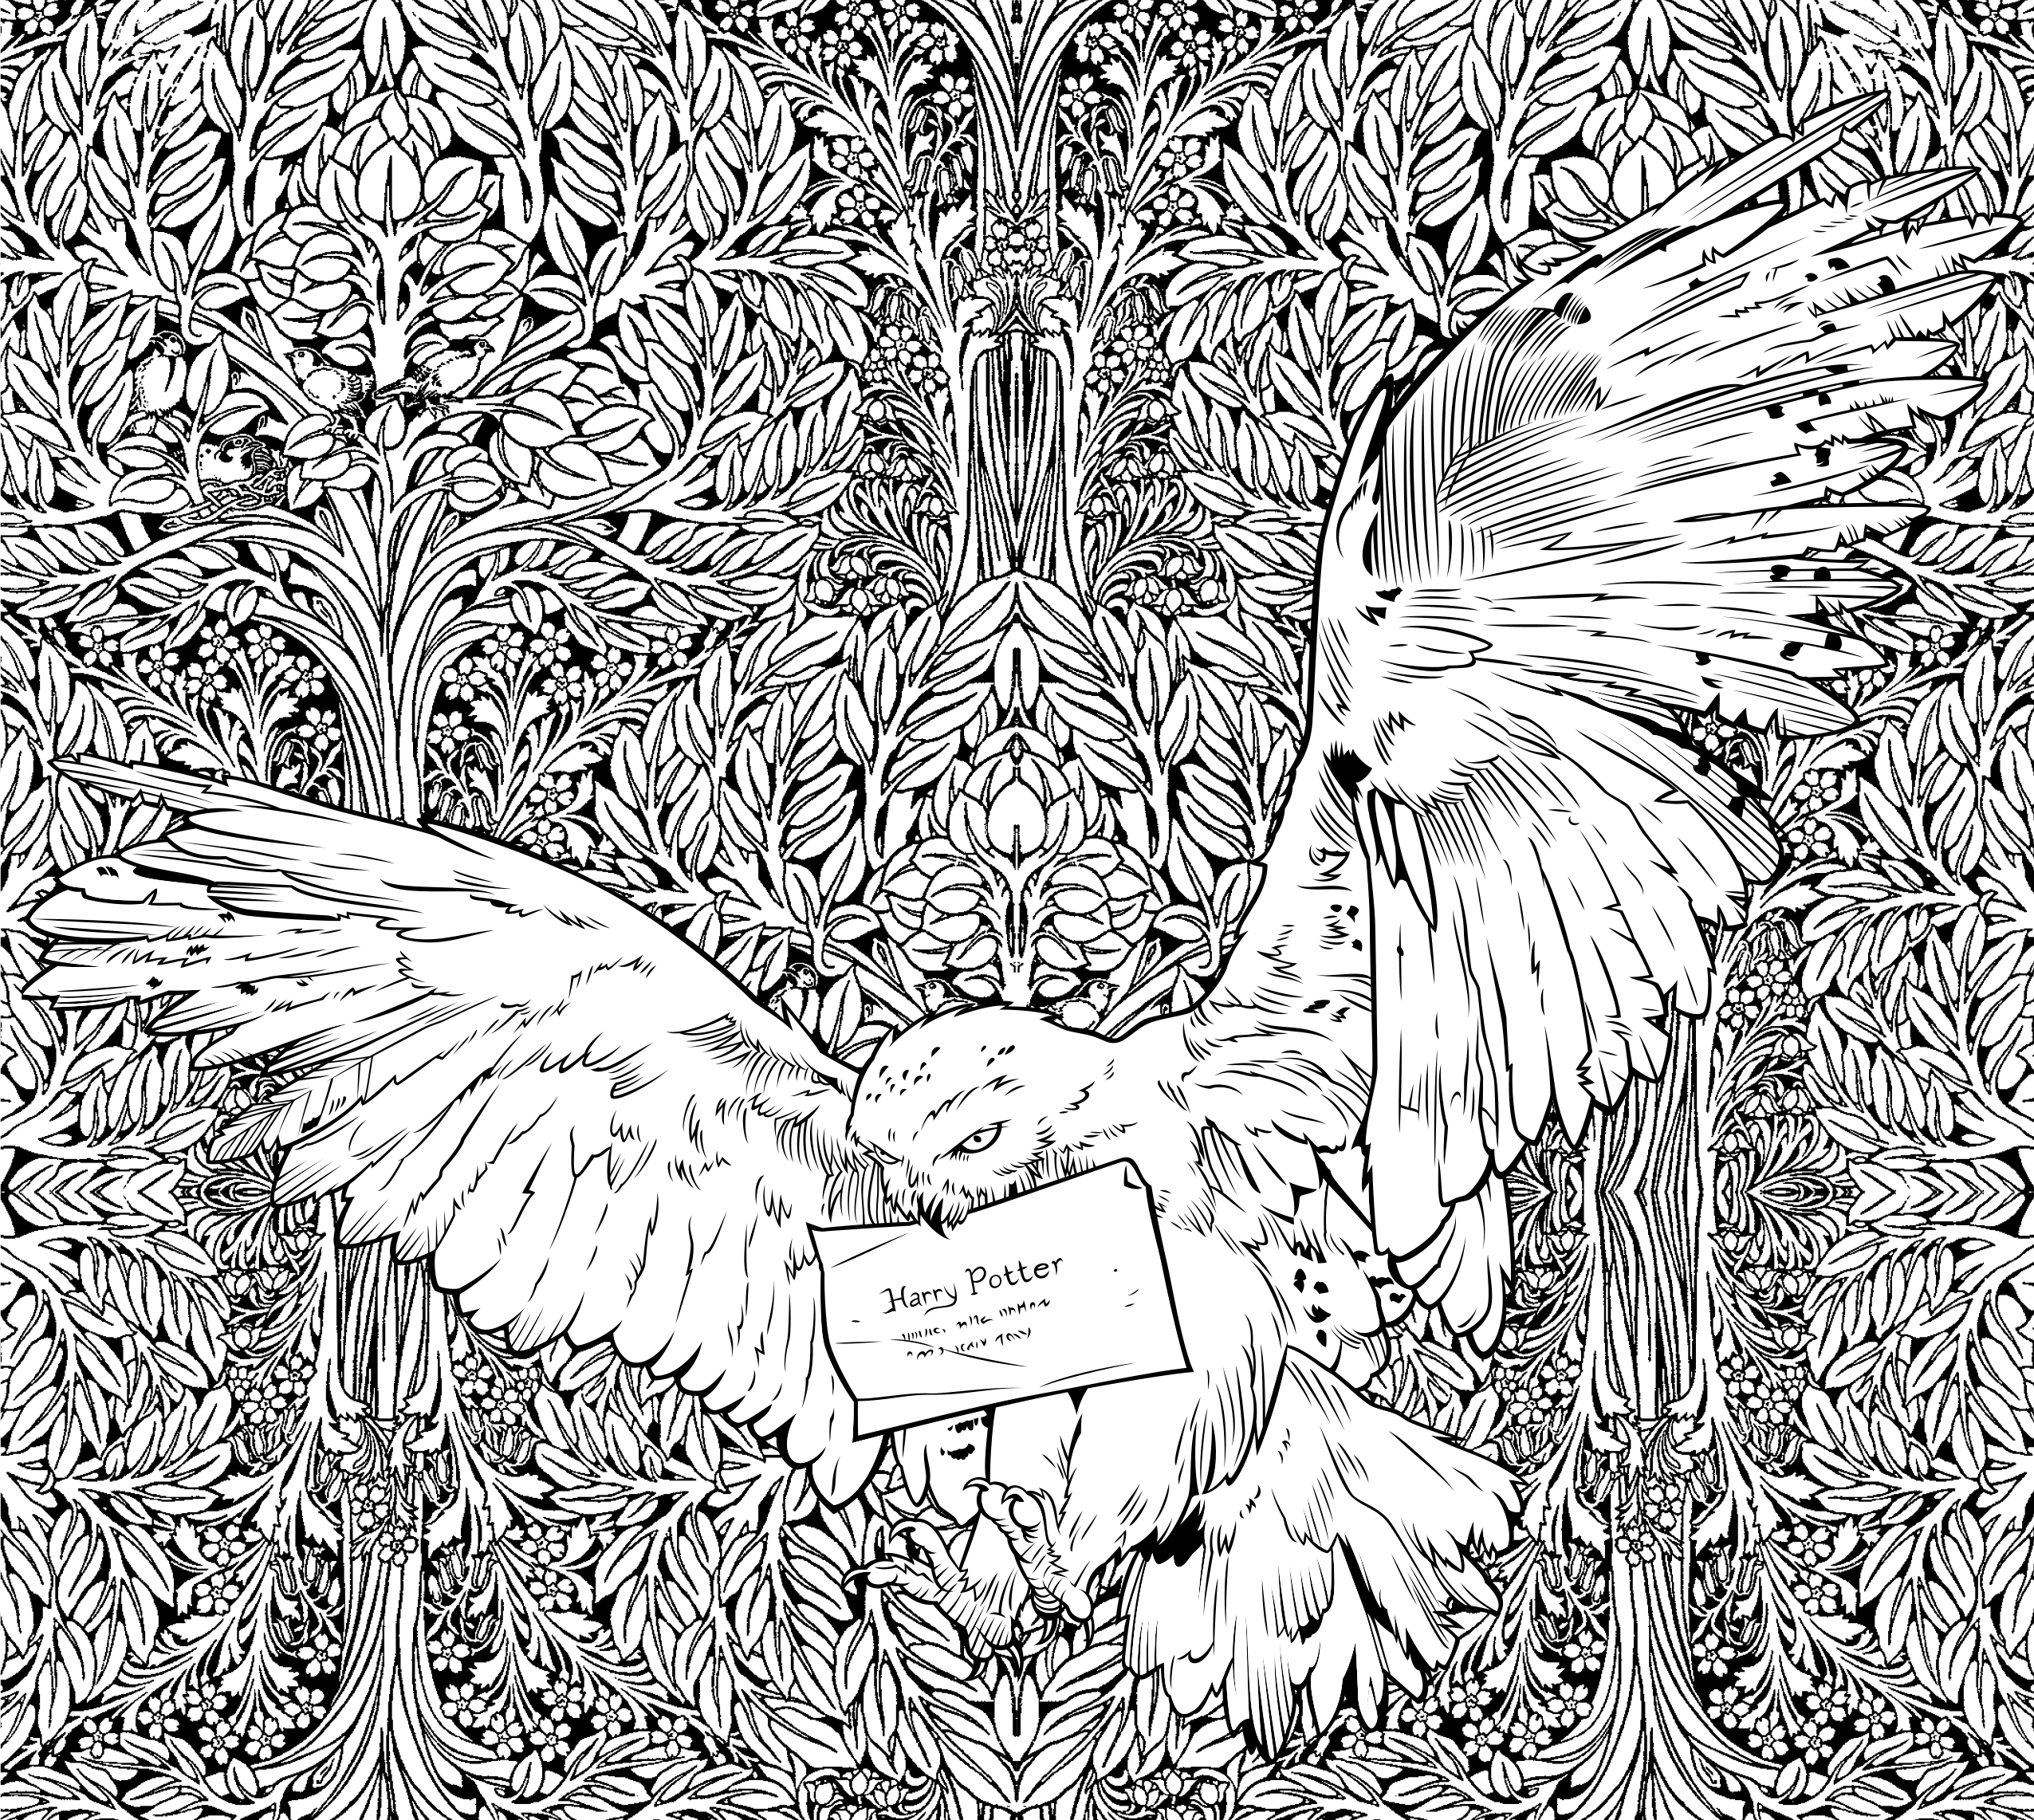 2551x2283 Excellent Ideas Harry Potter Coloring Book A Sneak Peek Of The New